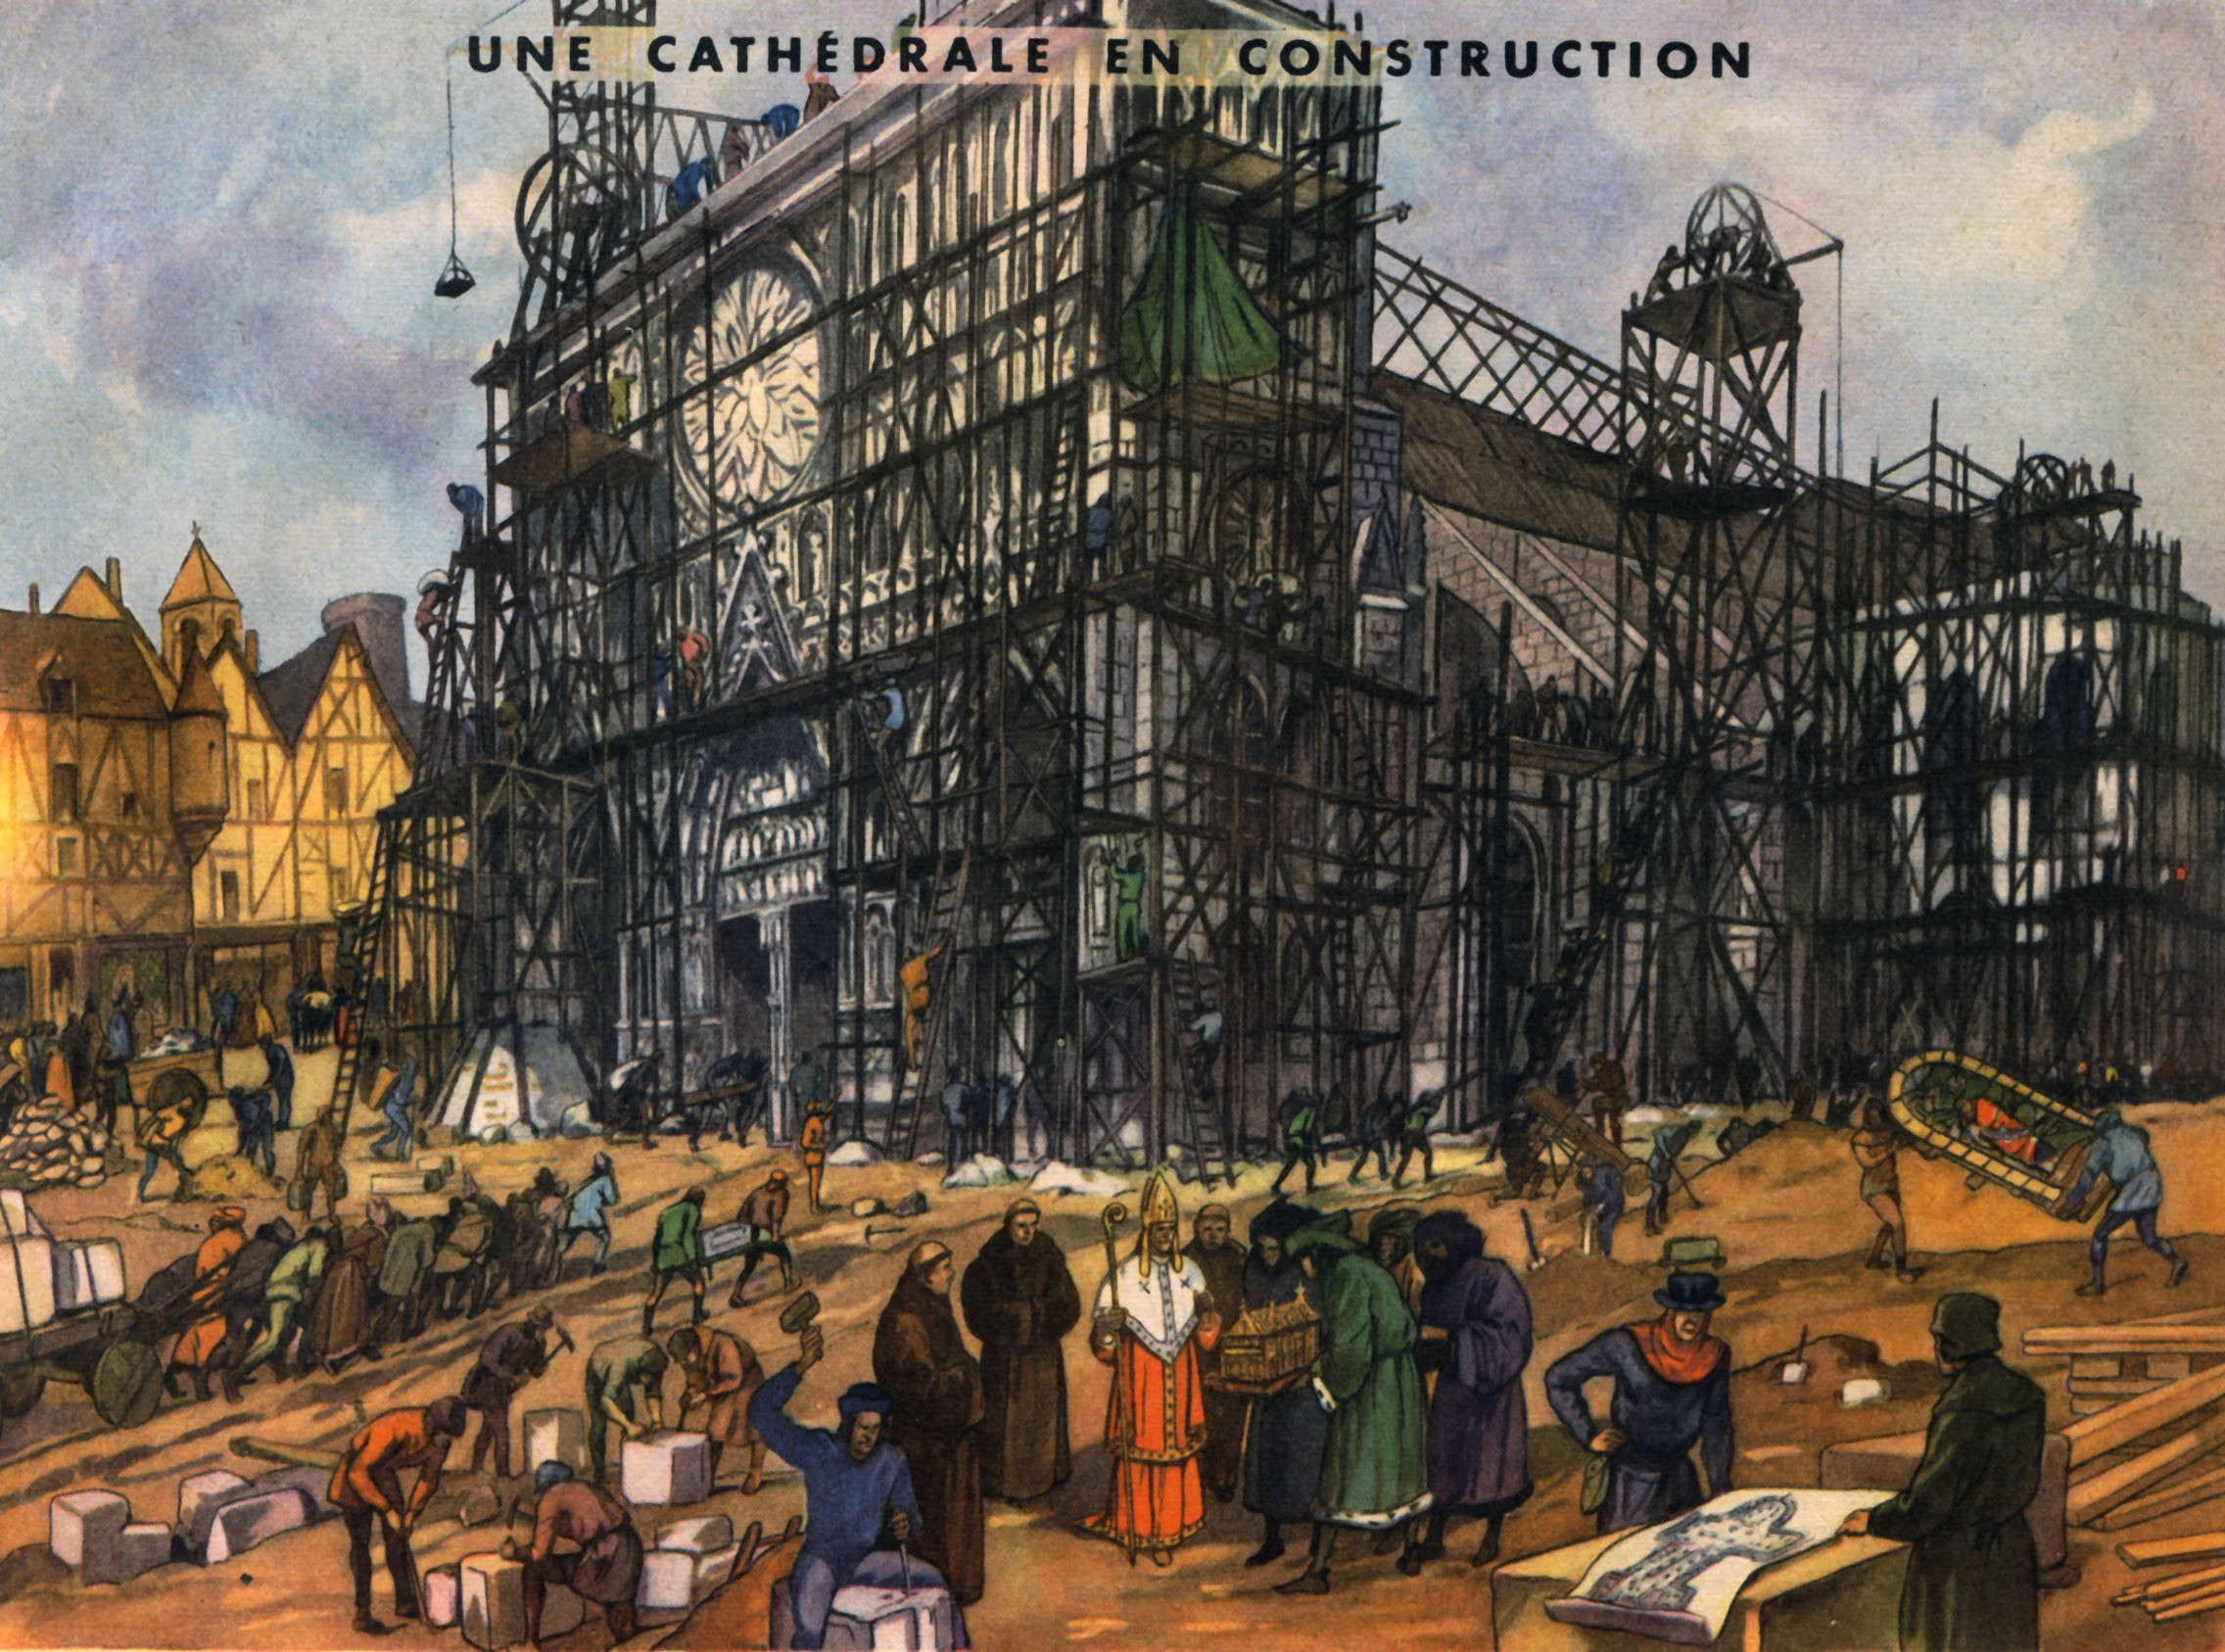 15 une cathedrale en construction